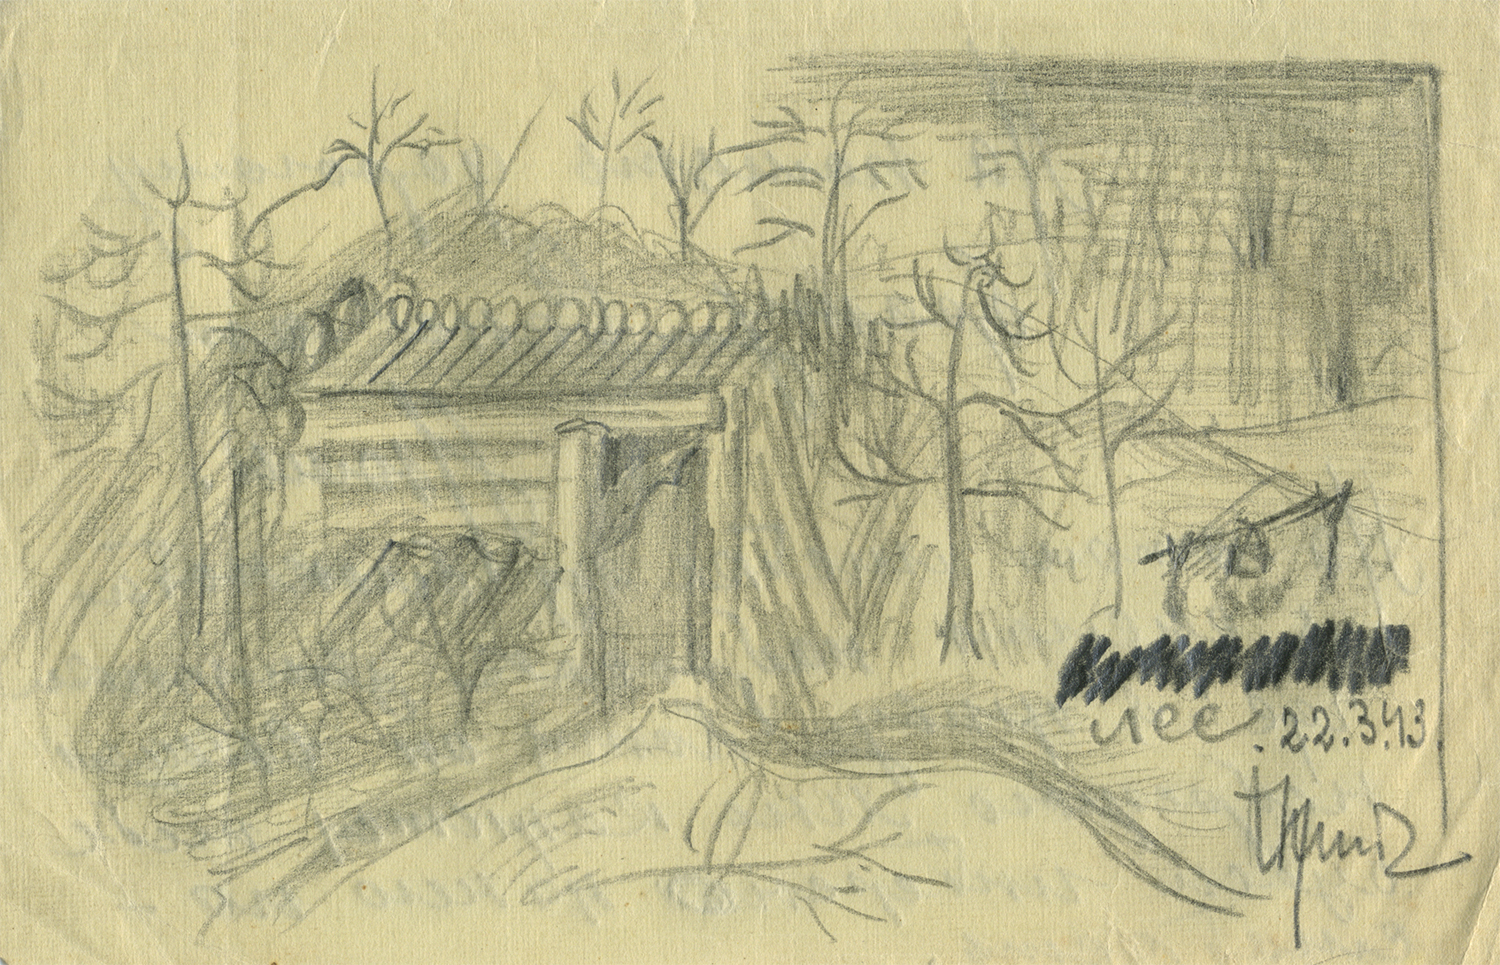 "Inscription on reverse: ""To my brother Senya from Nyusha [Gennady]. Here I drew the dugout where I live . . . [in the] forest."" March 22, 1943"